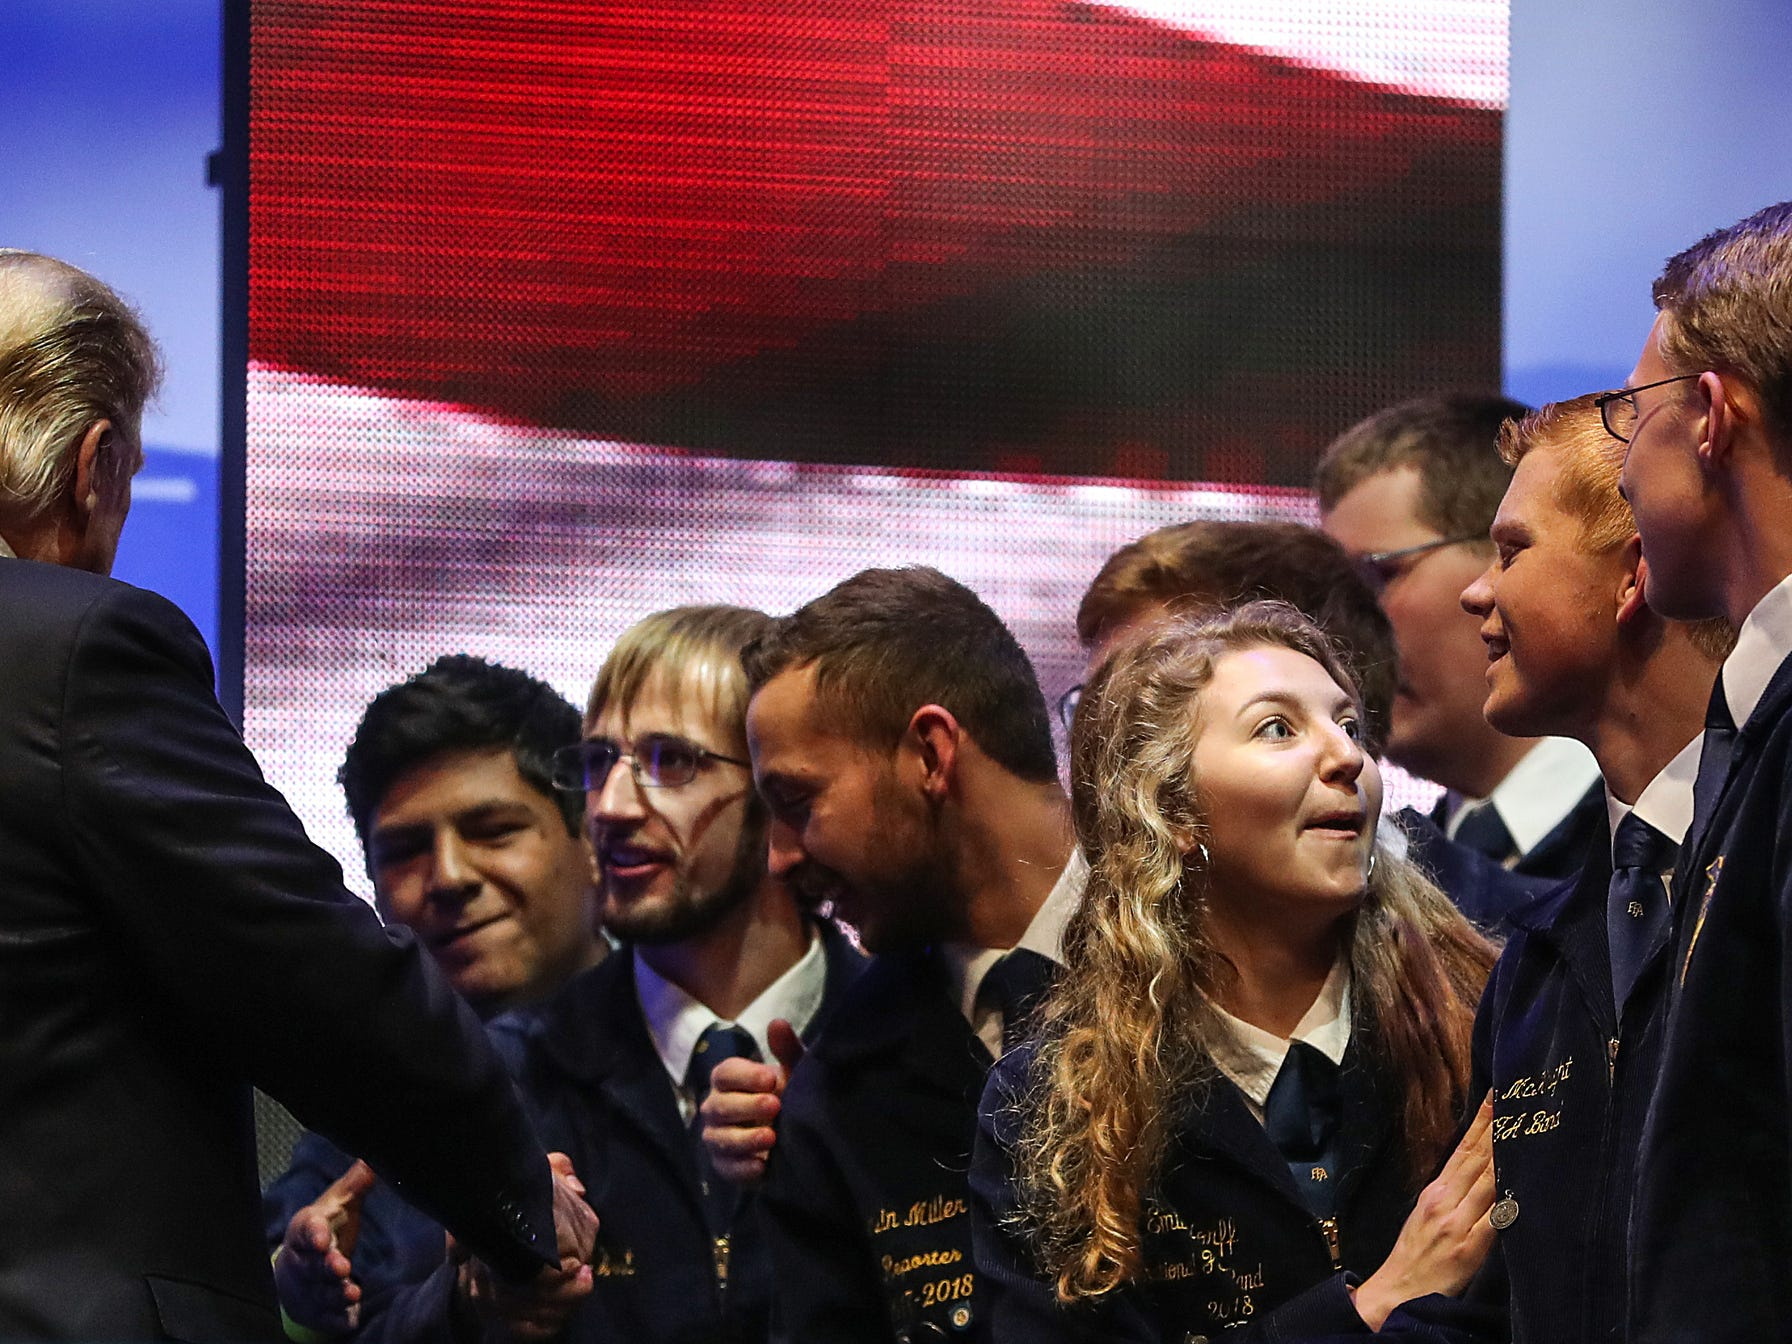 United States President Donald Trump greets attendees before speaking at the annual Future Farmers of America Convention and Expo at Banker's Life Fieldhouse, Saturday, Oct. 27, 2018.